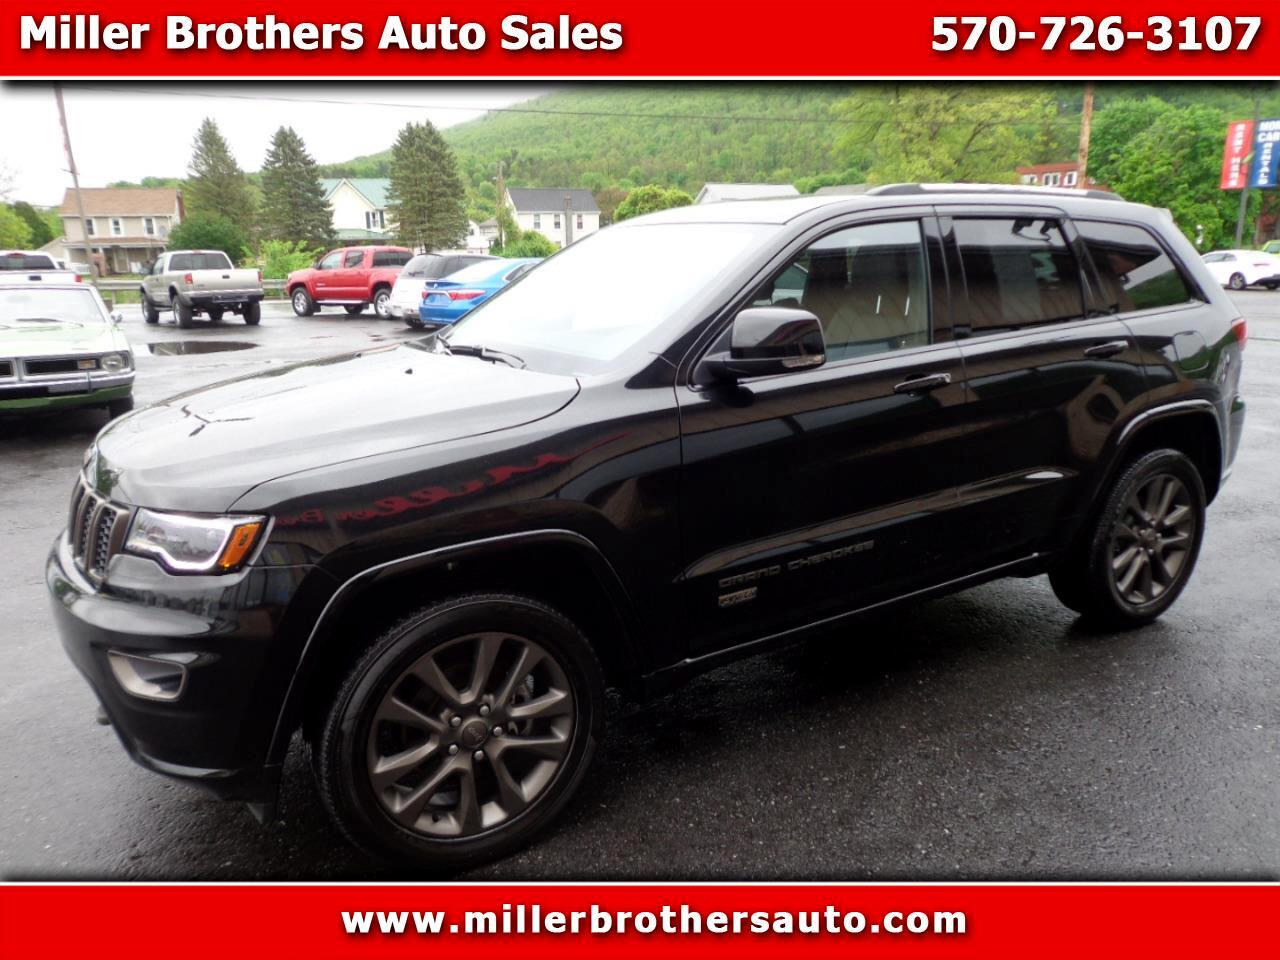 2016 Jeep Grand Cherokee 4WD 4dr Limited 75th Anniversary